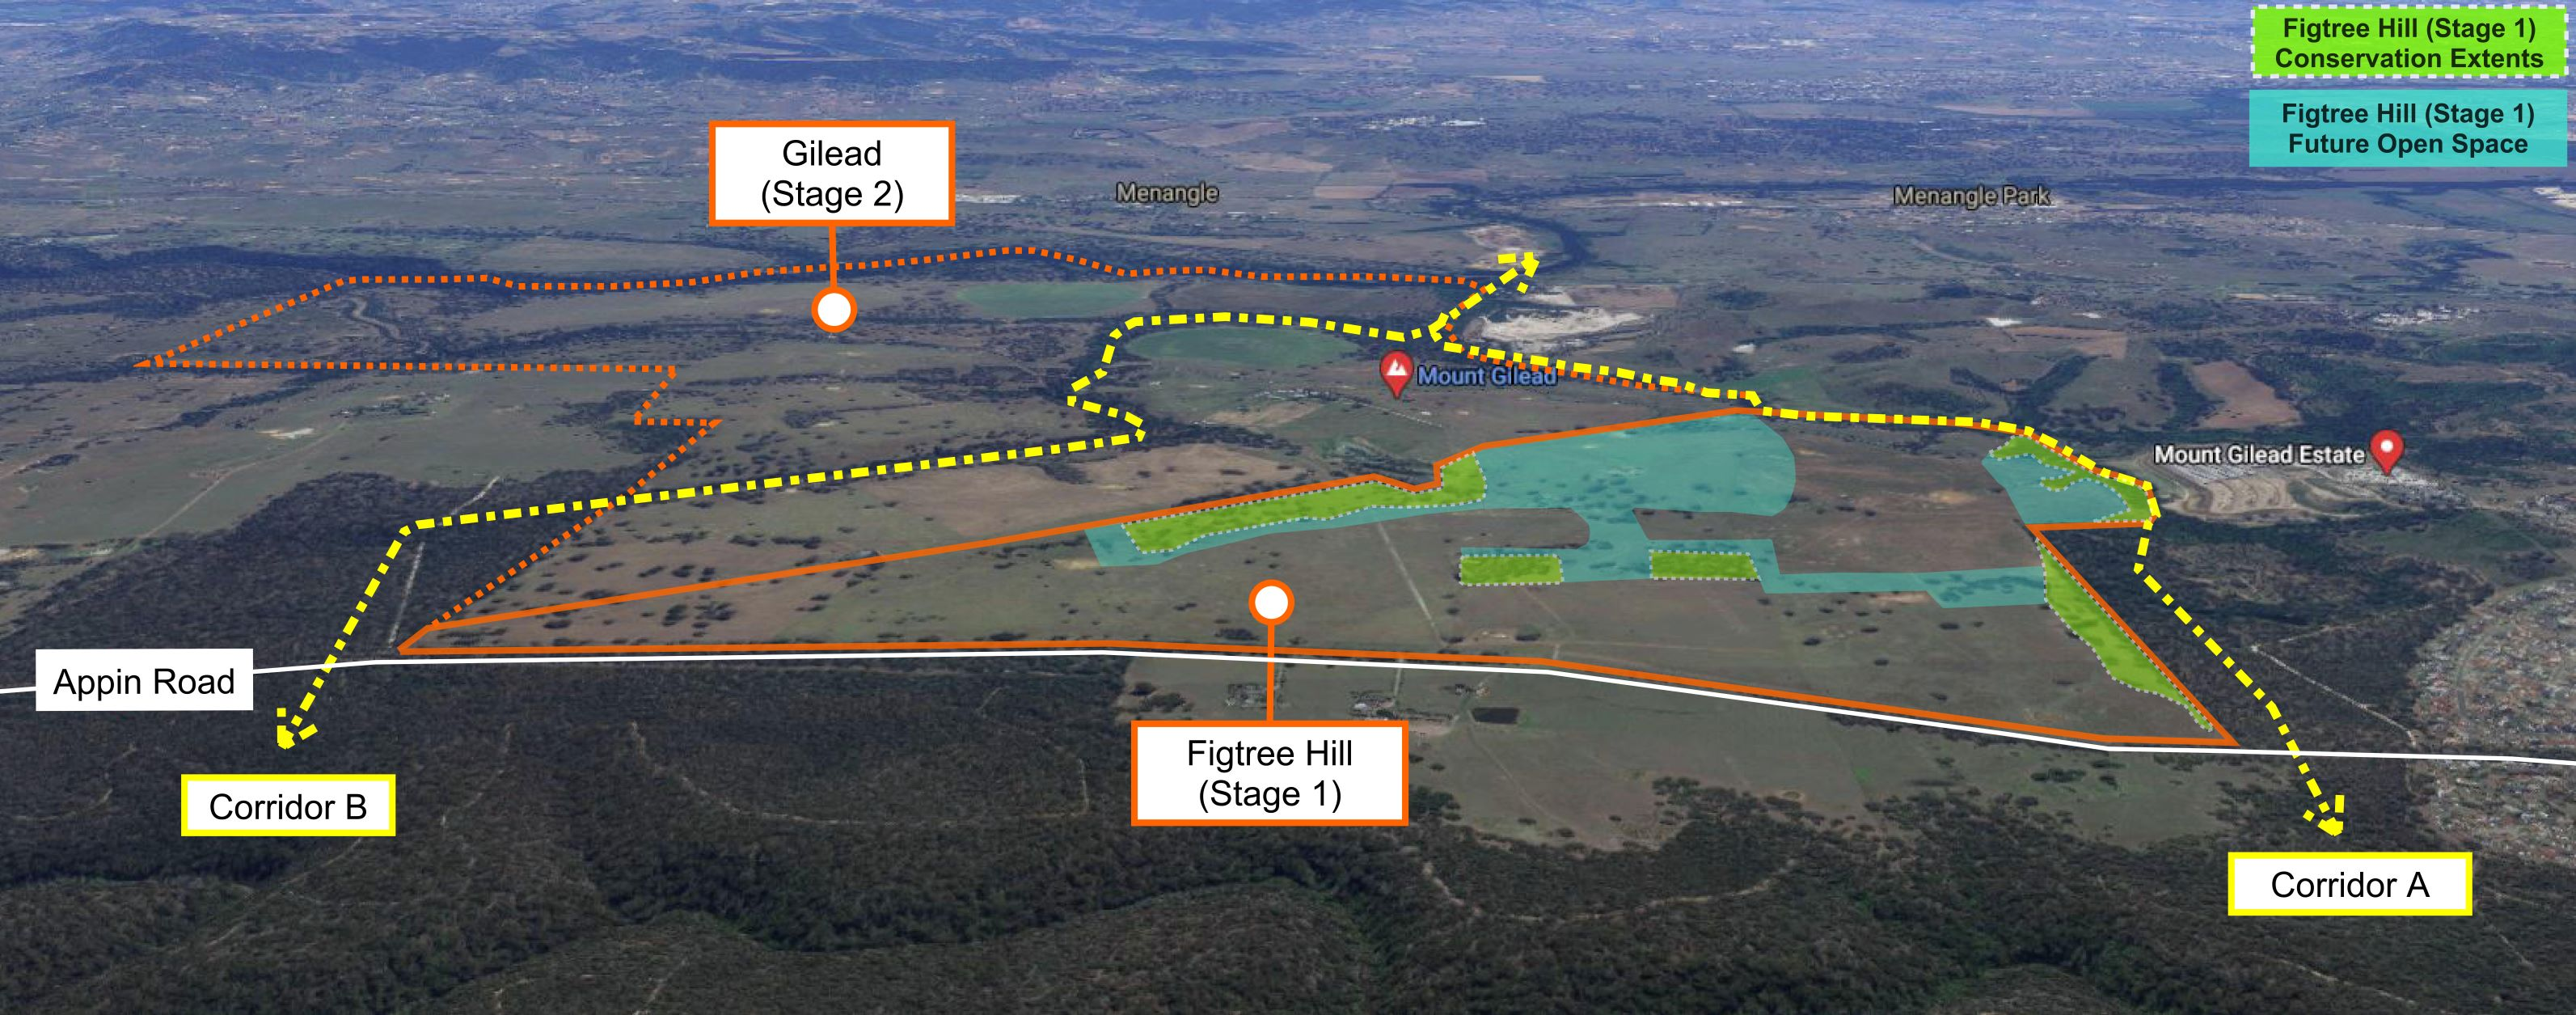 Koala migration routes around the Figtree Hill development at Gilead